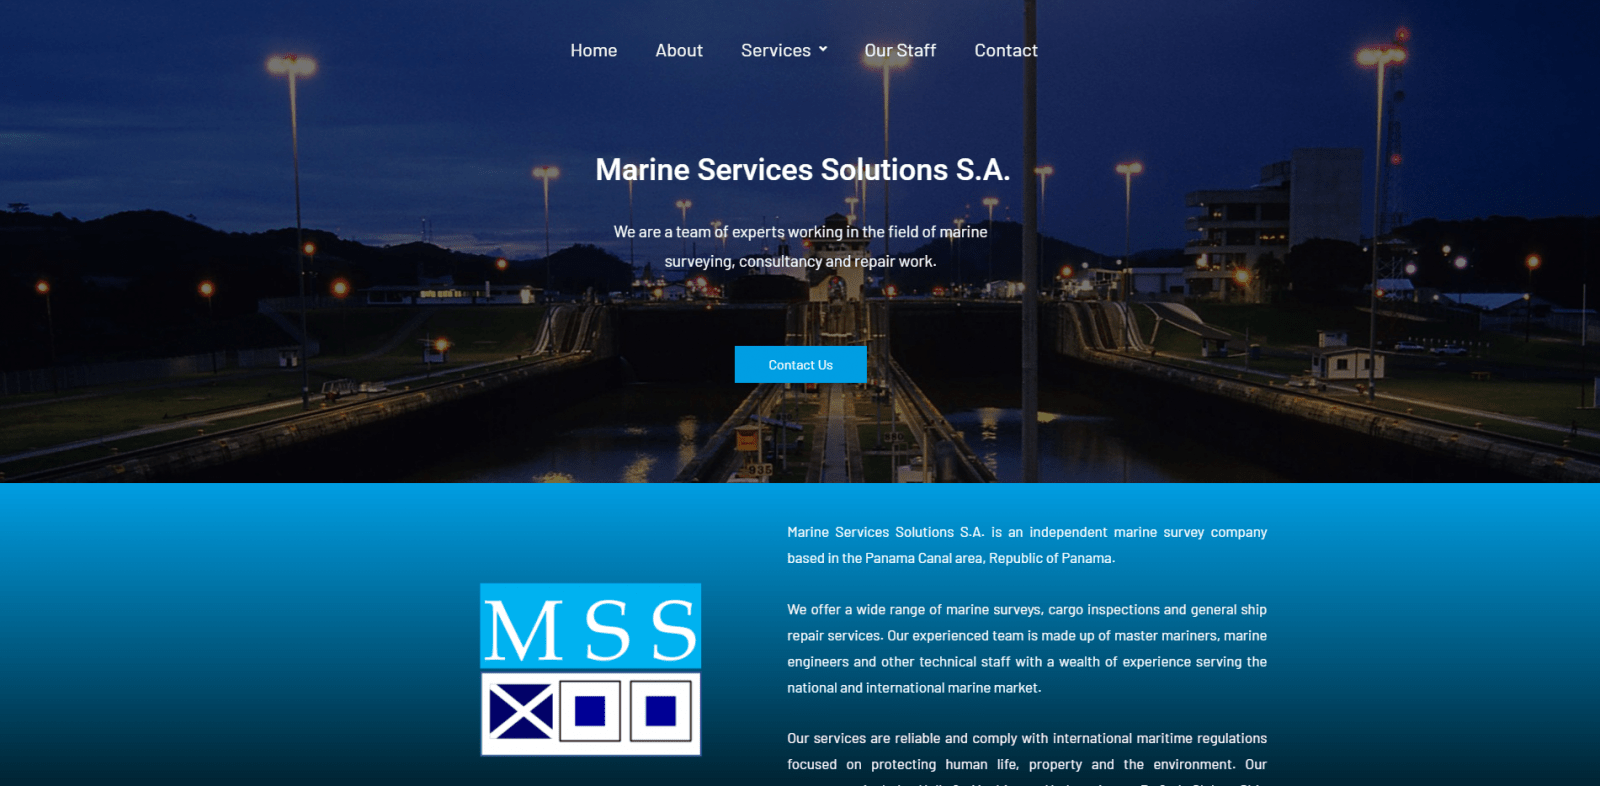 Marine Services Solutions